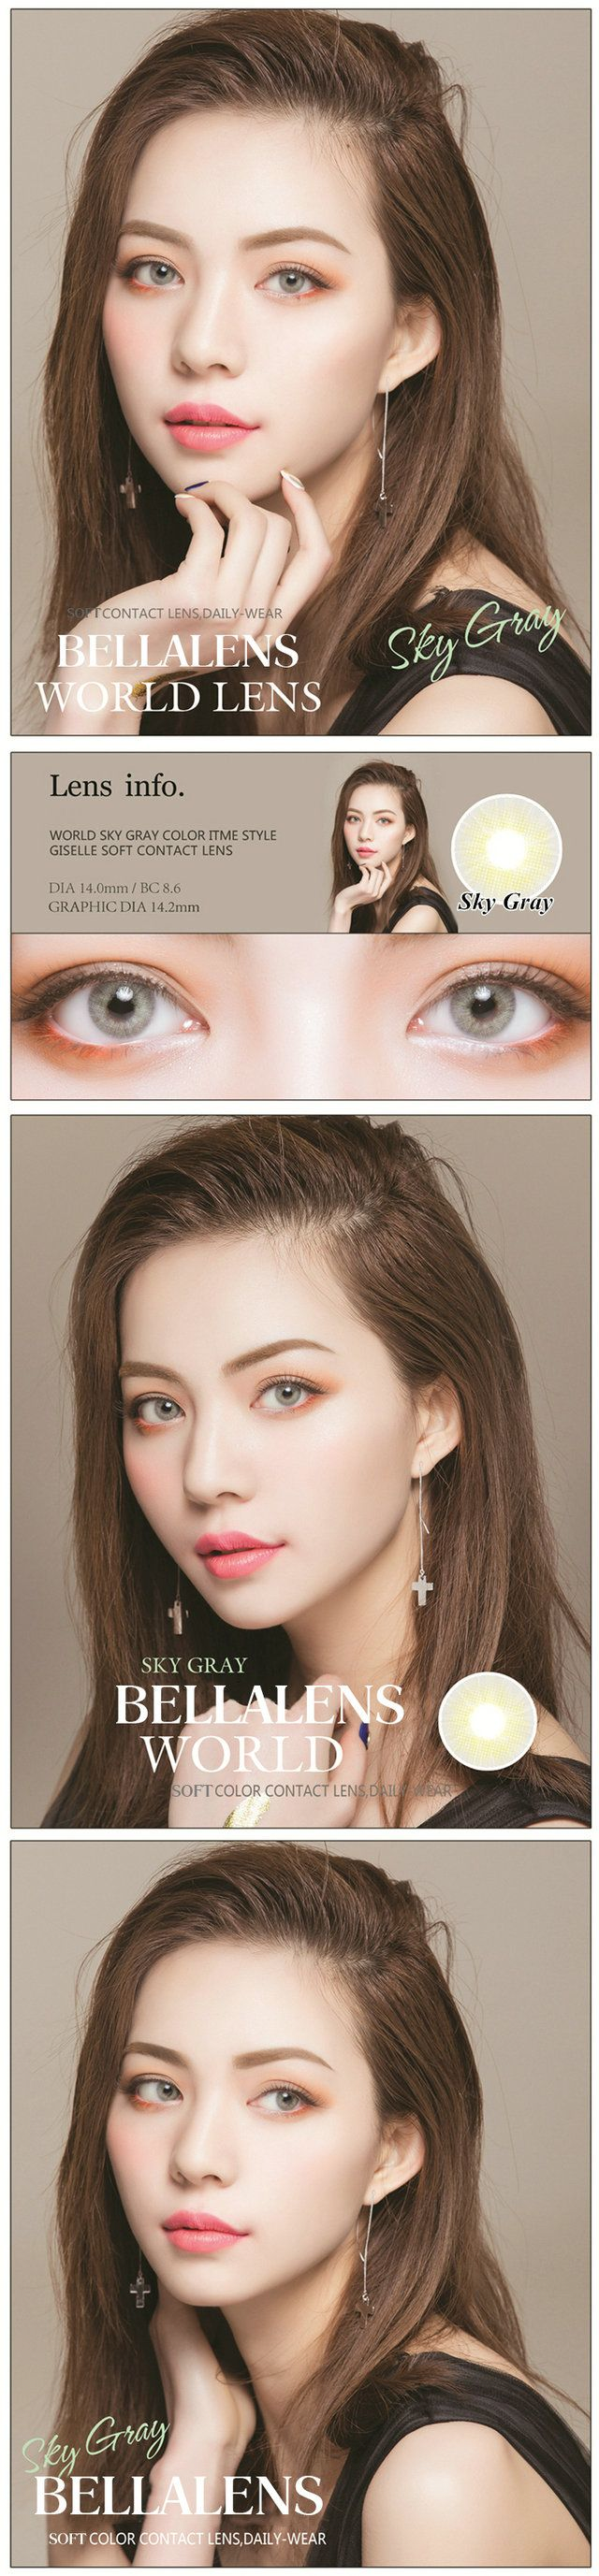 14.20mm Bella Aurora Contact Lens Color Sky Gray - $16.99 : contactlensdropshipping.com, online shopping